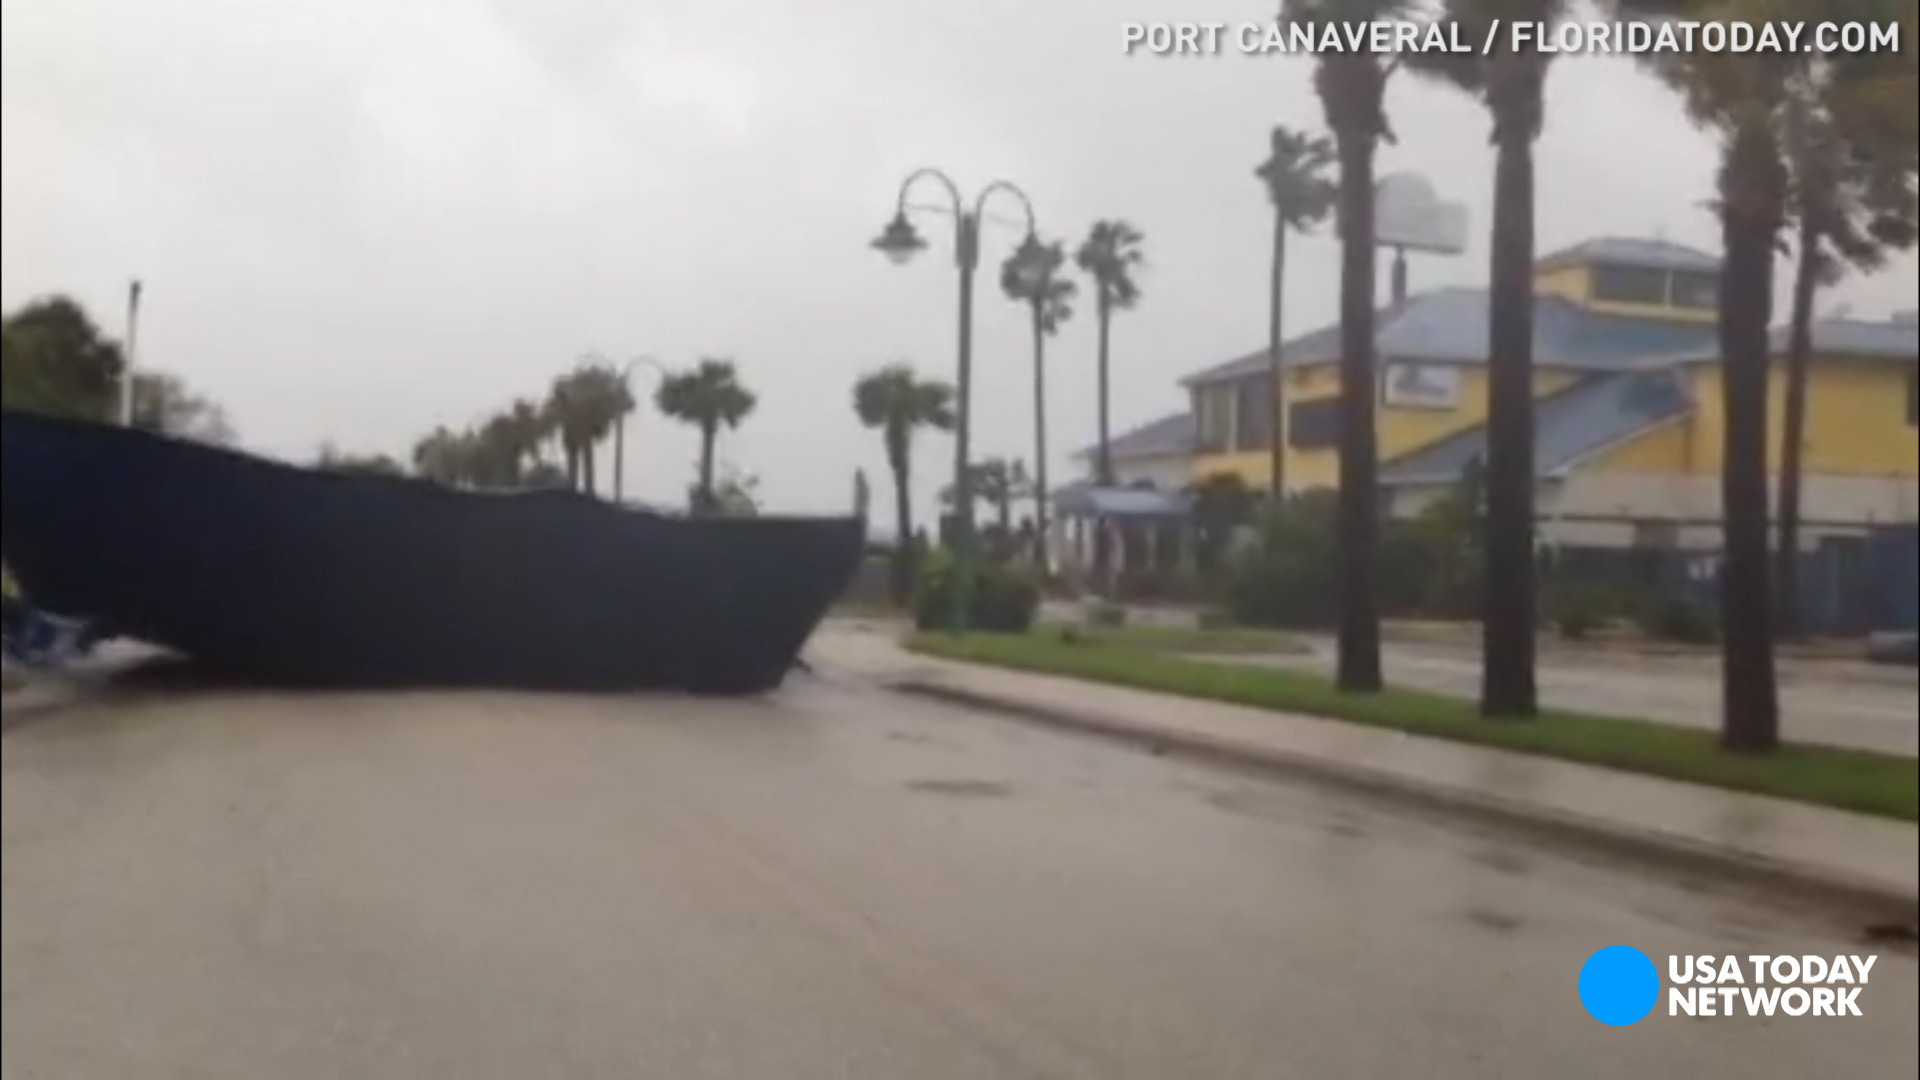 Hurricane Matthew roars into Florida